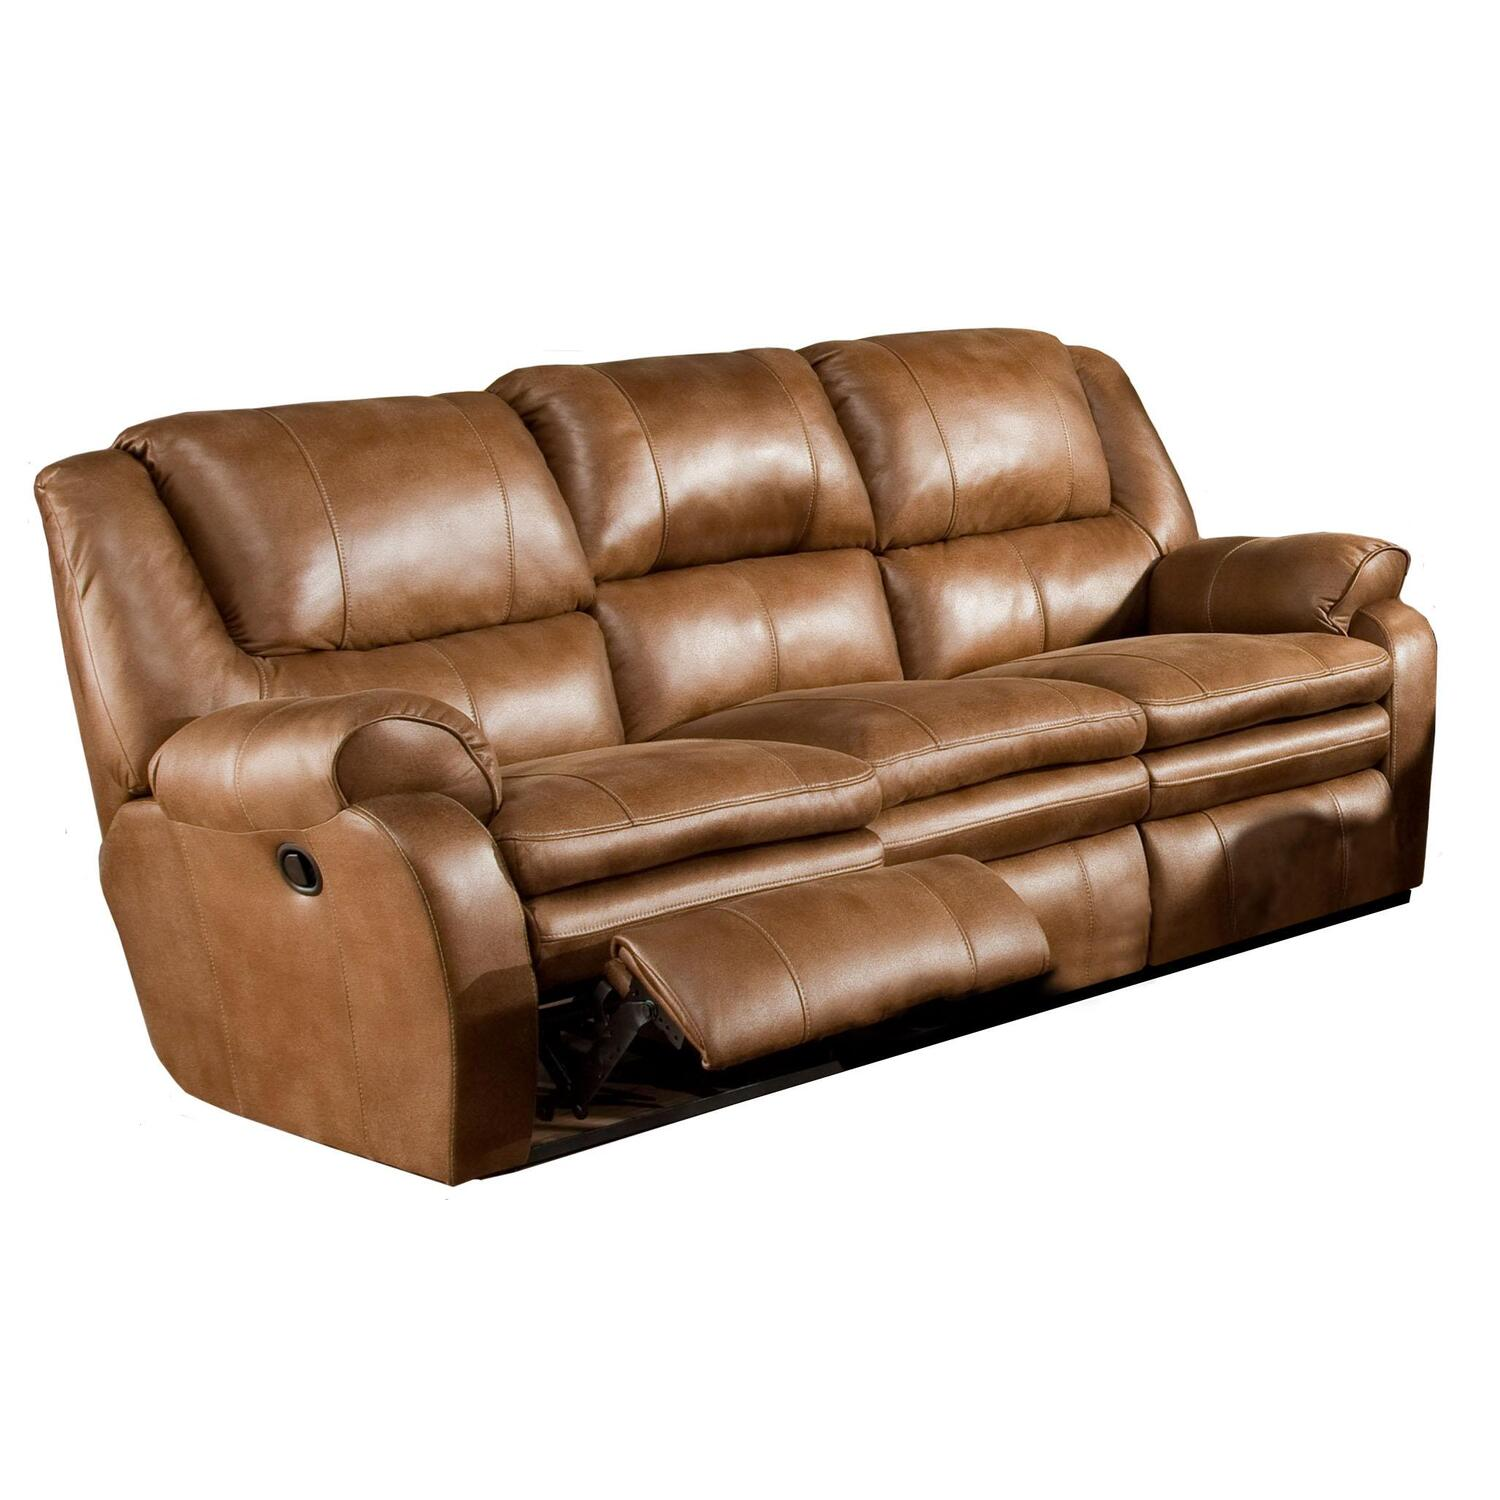 Catnapper Reclining Sofa Reviews Catnapper Siesta Lay Flat Reclining Fabric Sofa In Porcini